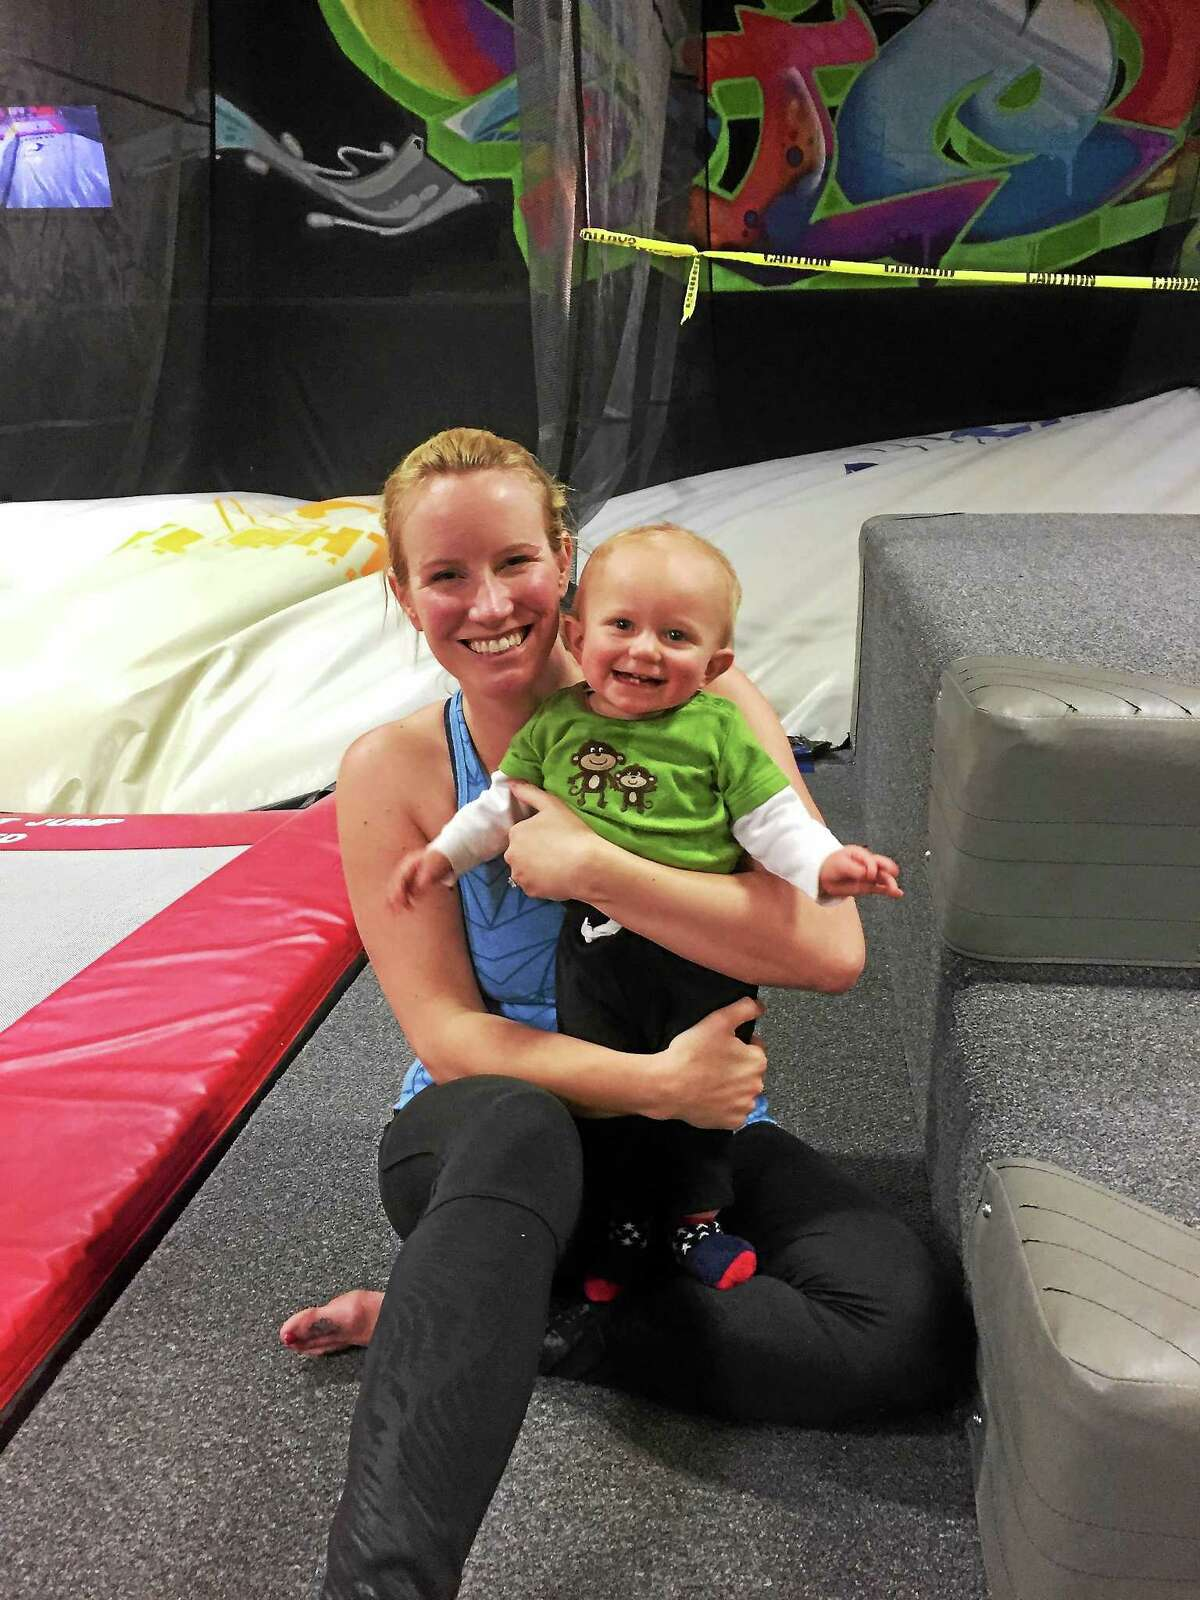 Lindsay Hanson and her son Jack.